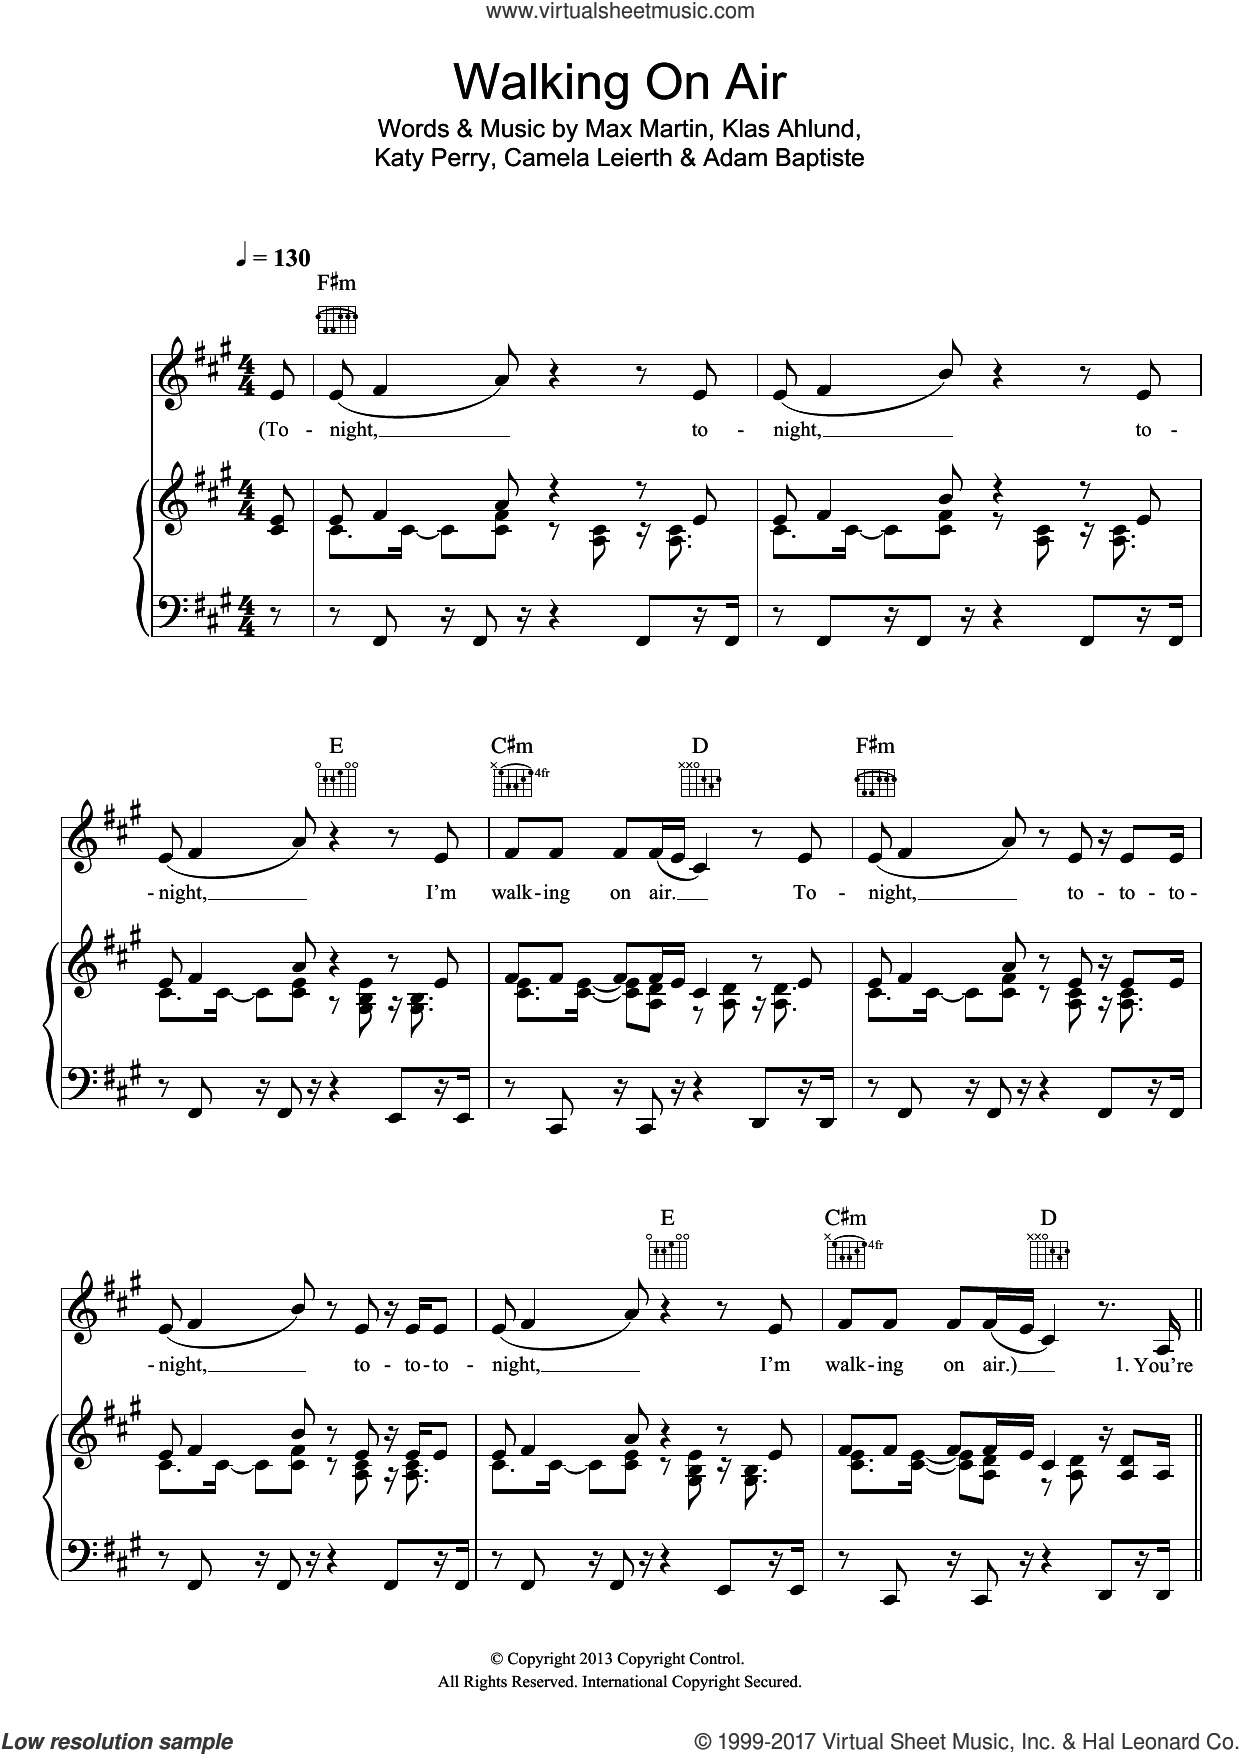 Walking On Air sheet music for voice, piano or guitar by Katy Perry, Klas Ahlund and Max Martin, intermediate. Score Image Preview.